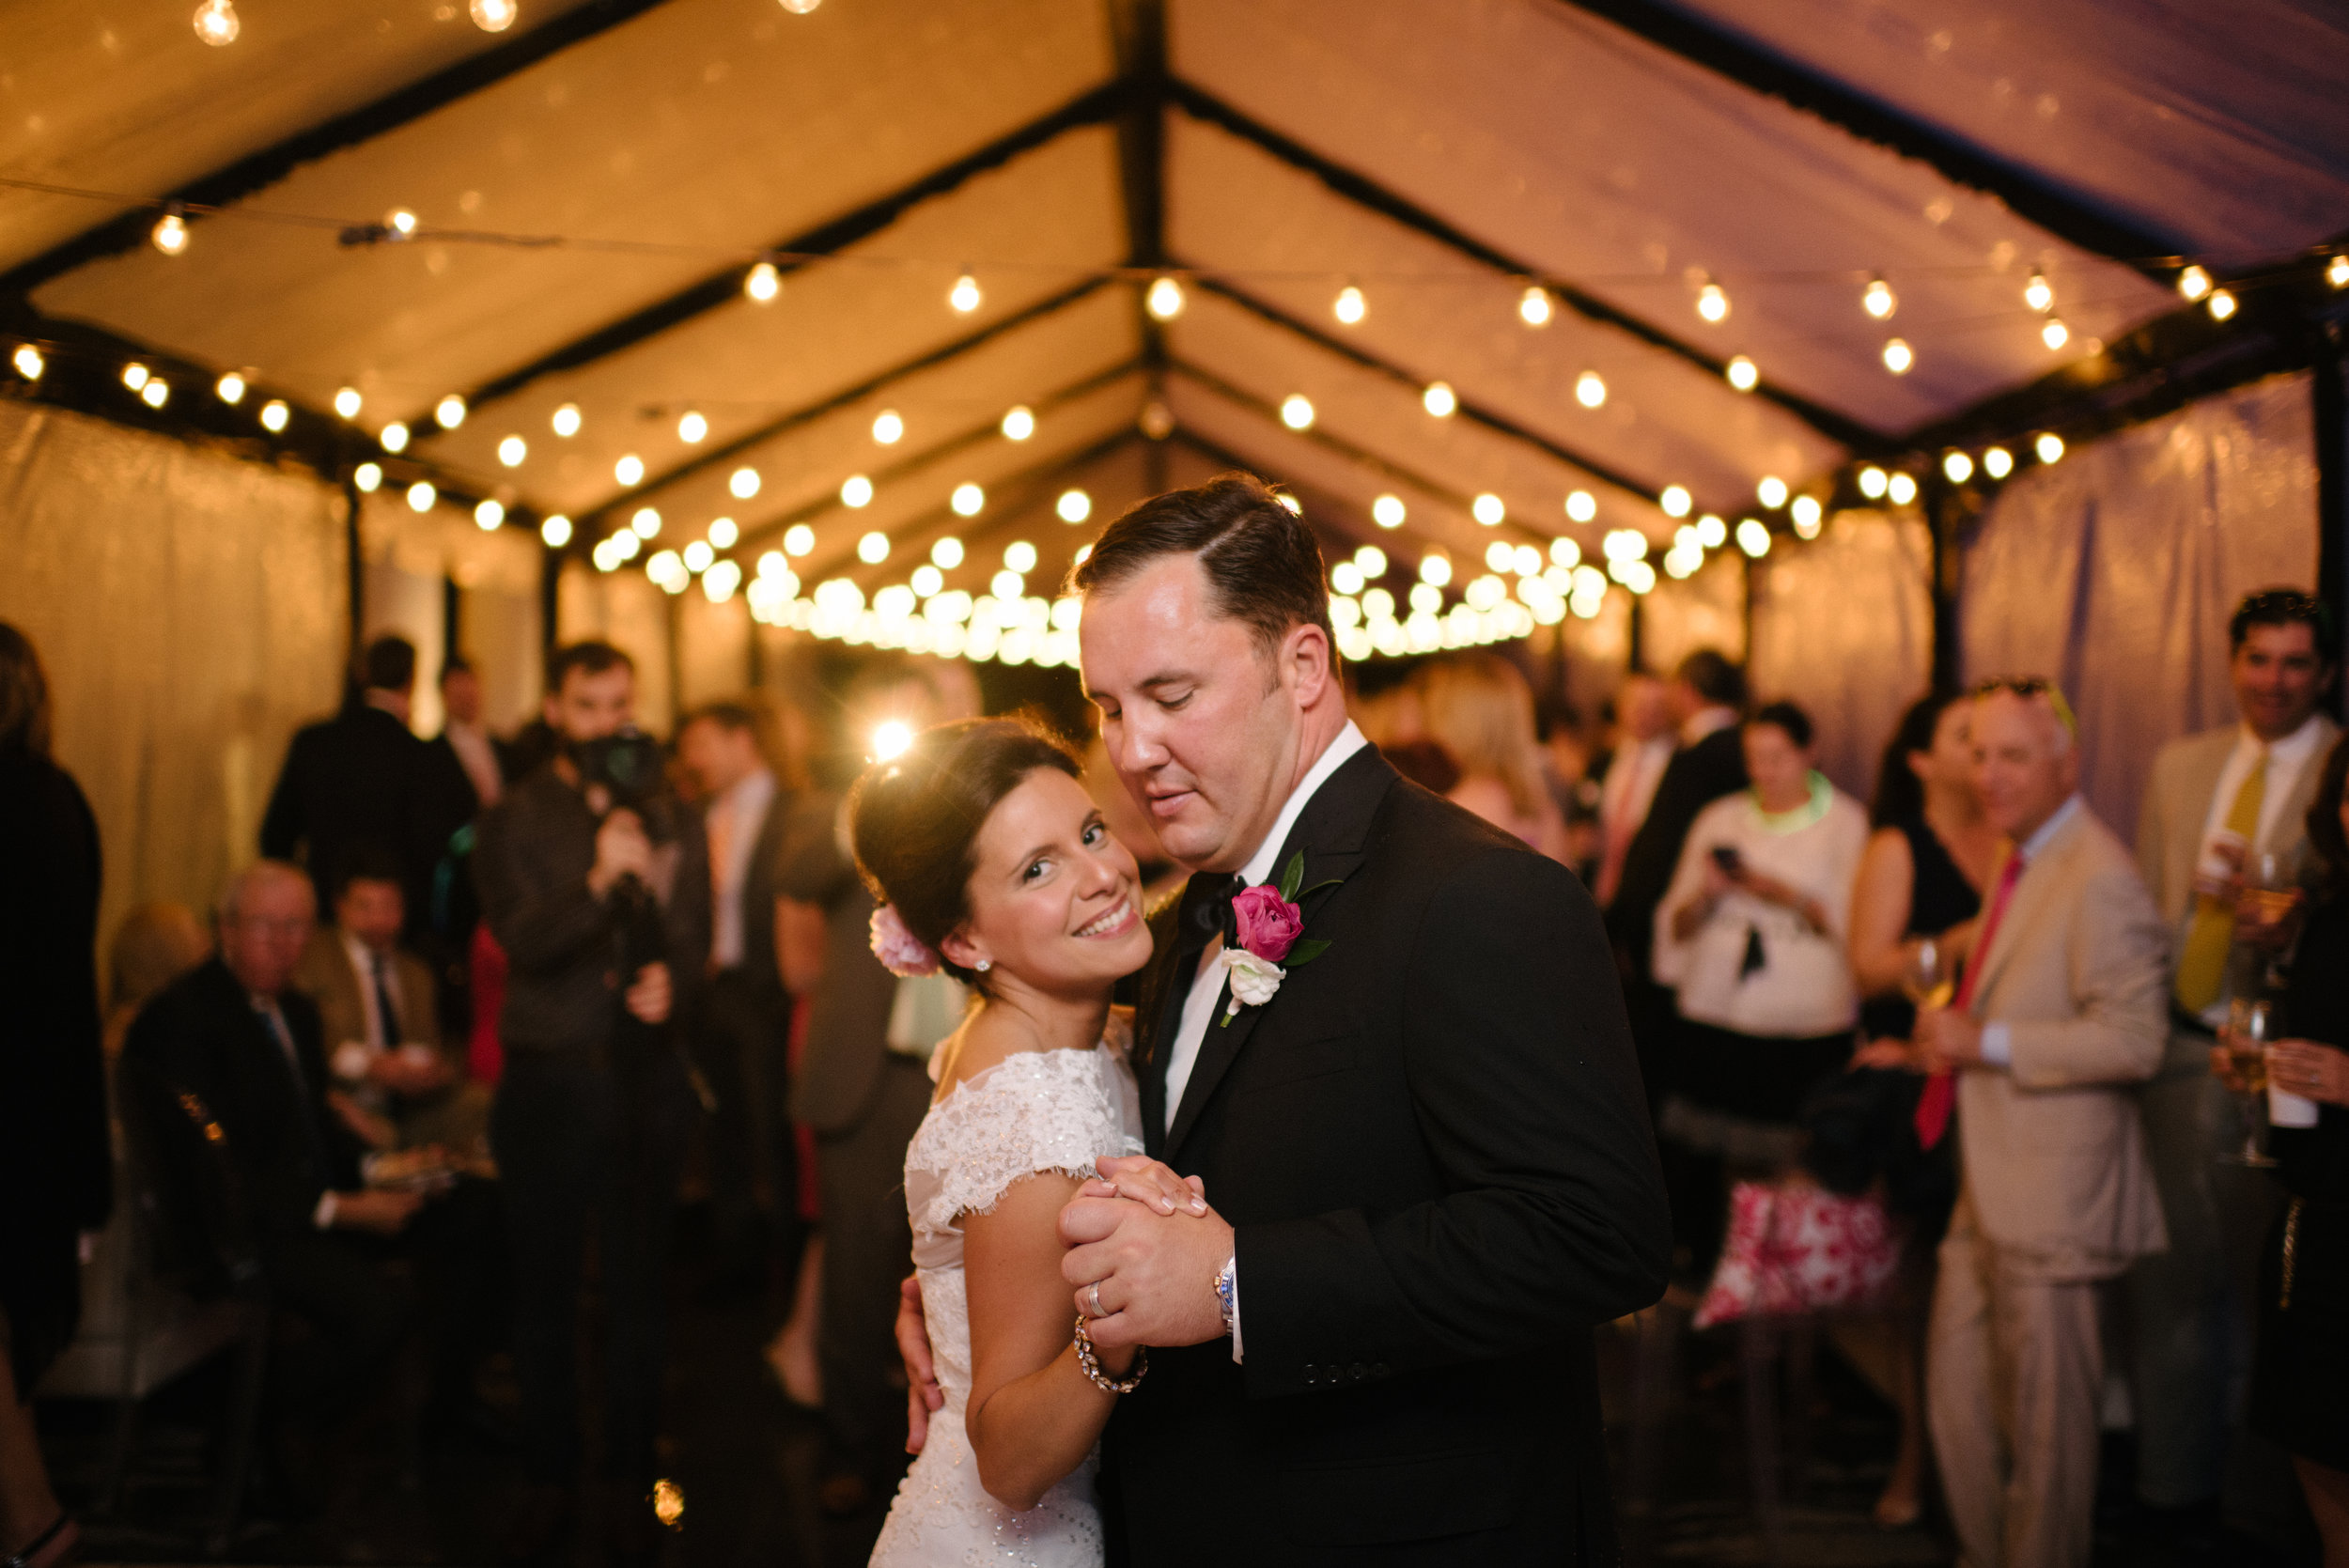 Southern Fete, Southern Wedding, Bag of Donuts, Bride and Groom dance